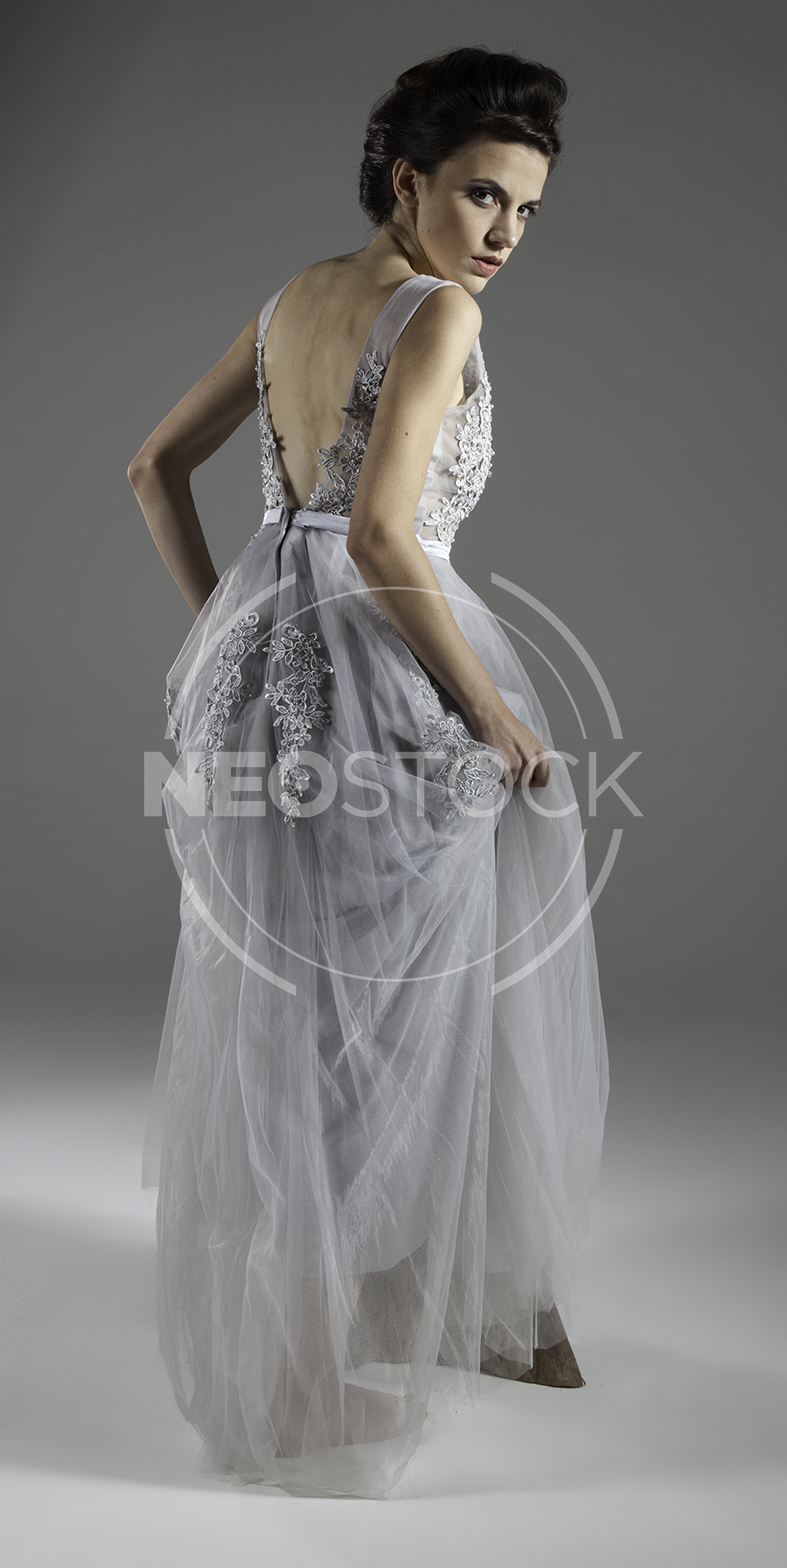 NeoStock - Liepa Contemporary Dress V - Stock Photography